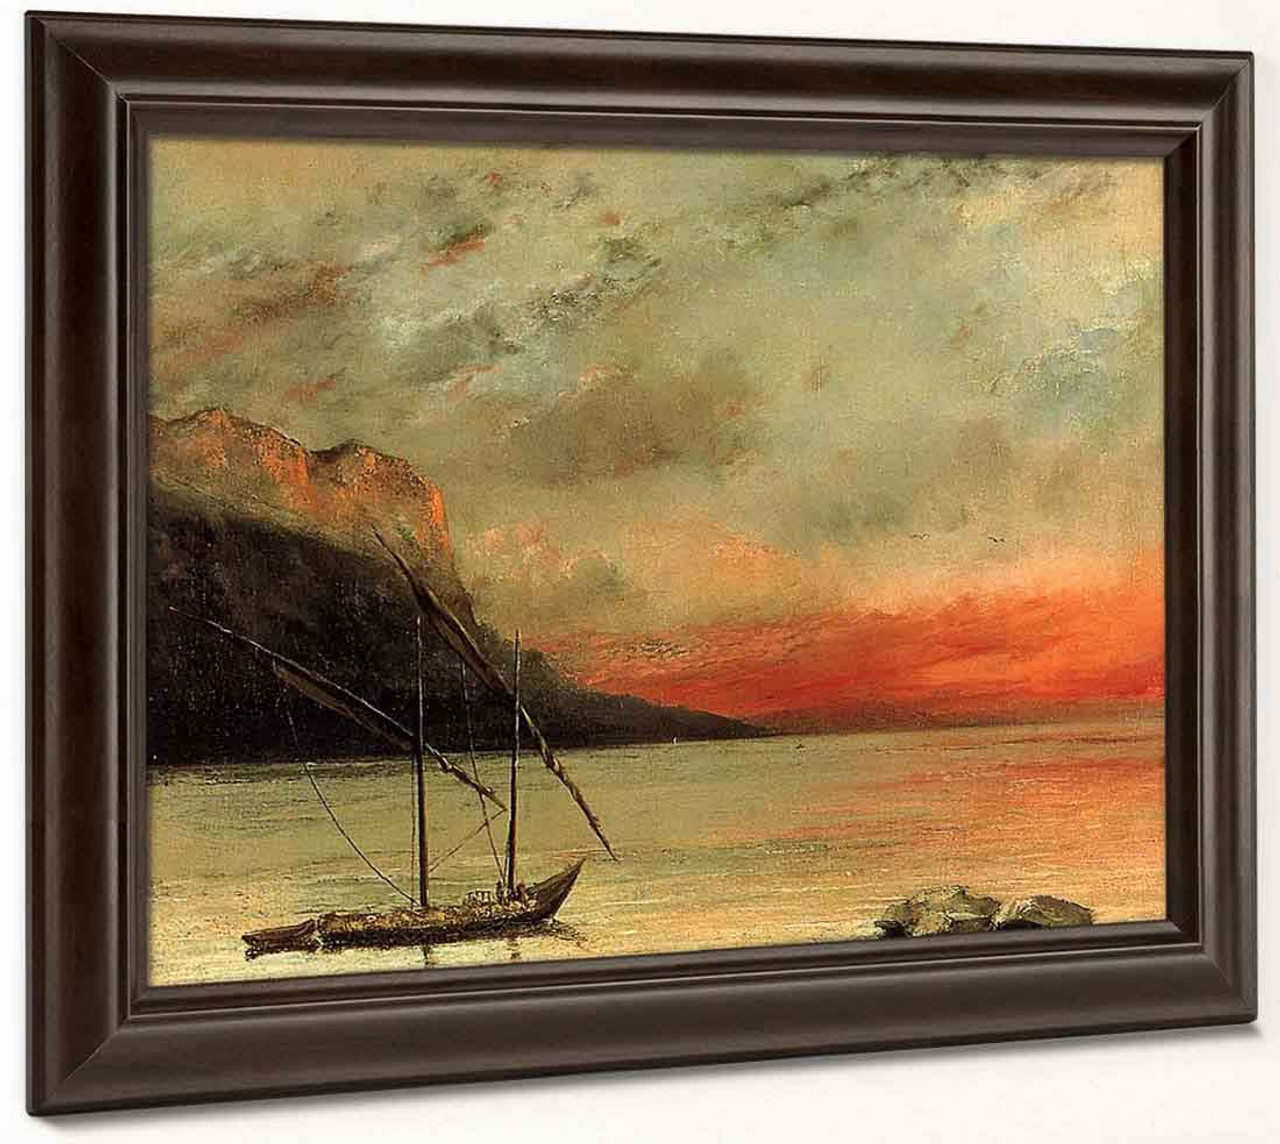 Sunset On Lake Leman Gustave Courbet Repro Oil Painting On Canvas Free Shipping Painting & Calligraphy Home Decor